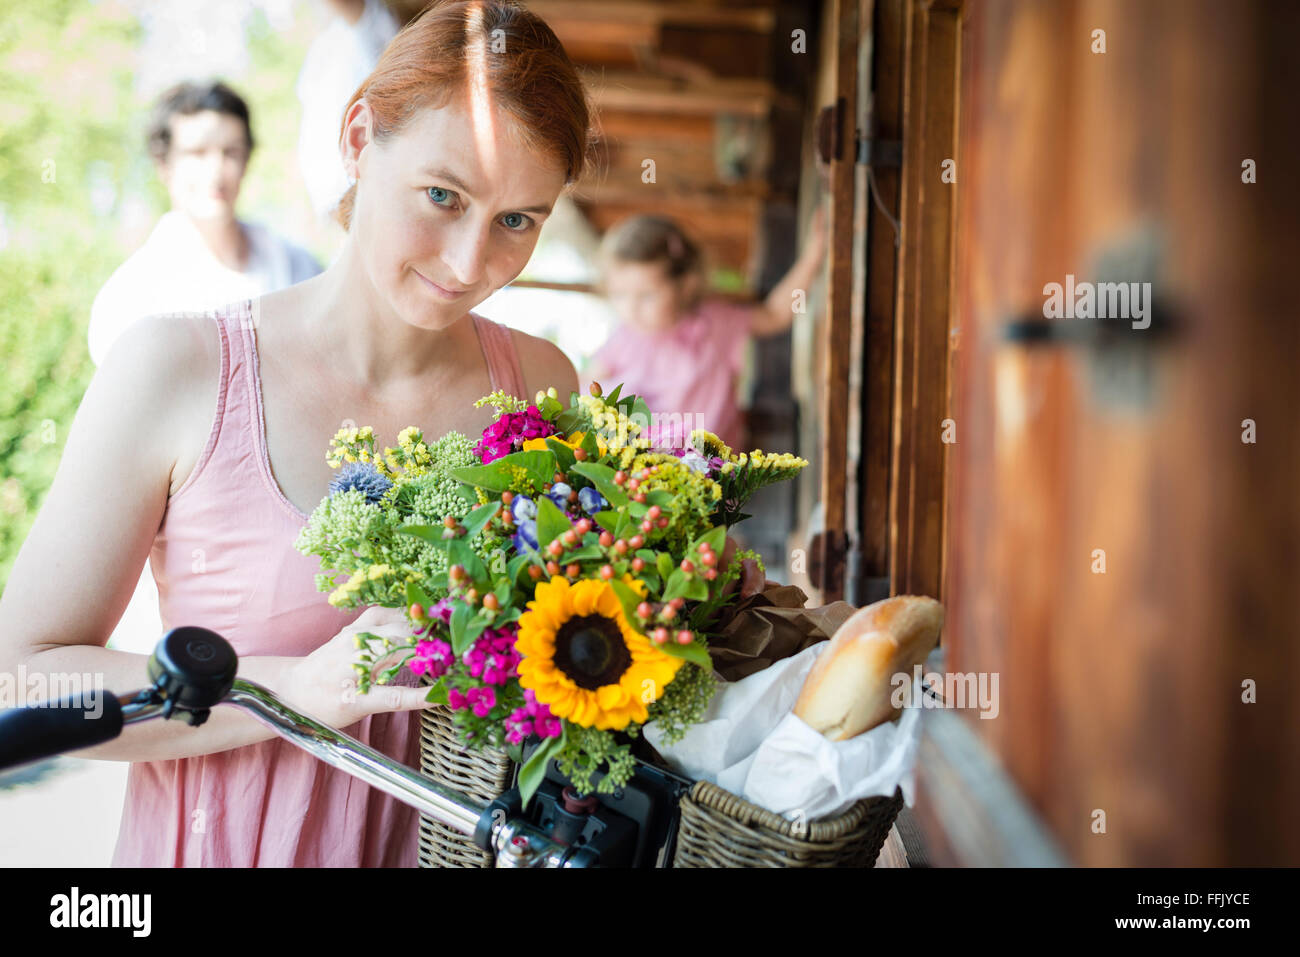 Portrait of mid adult woman with flowers - Stock Image